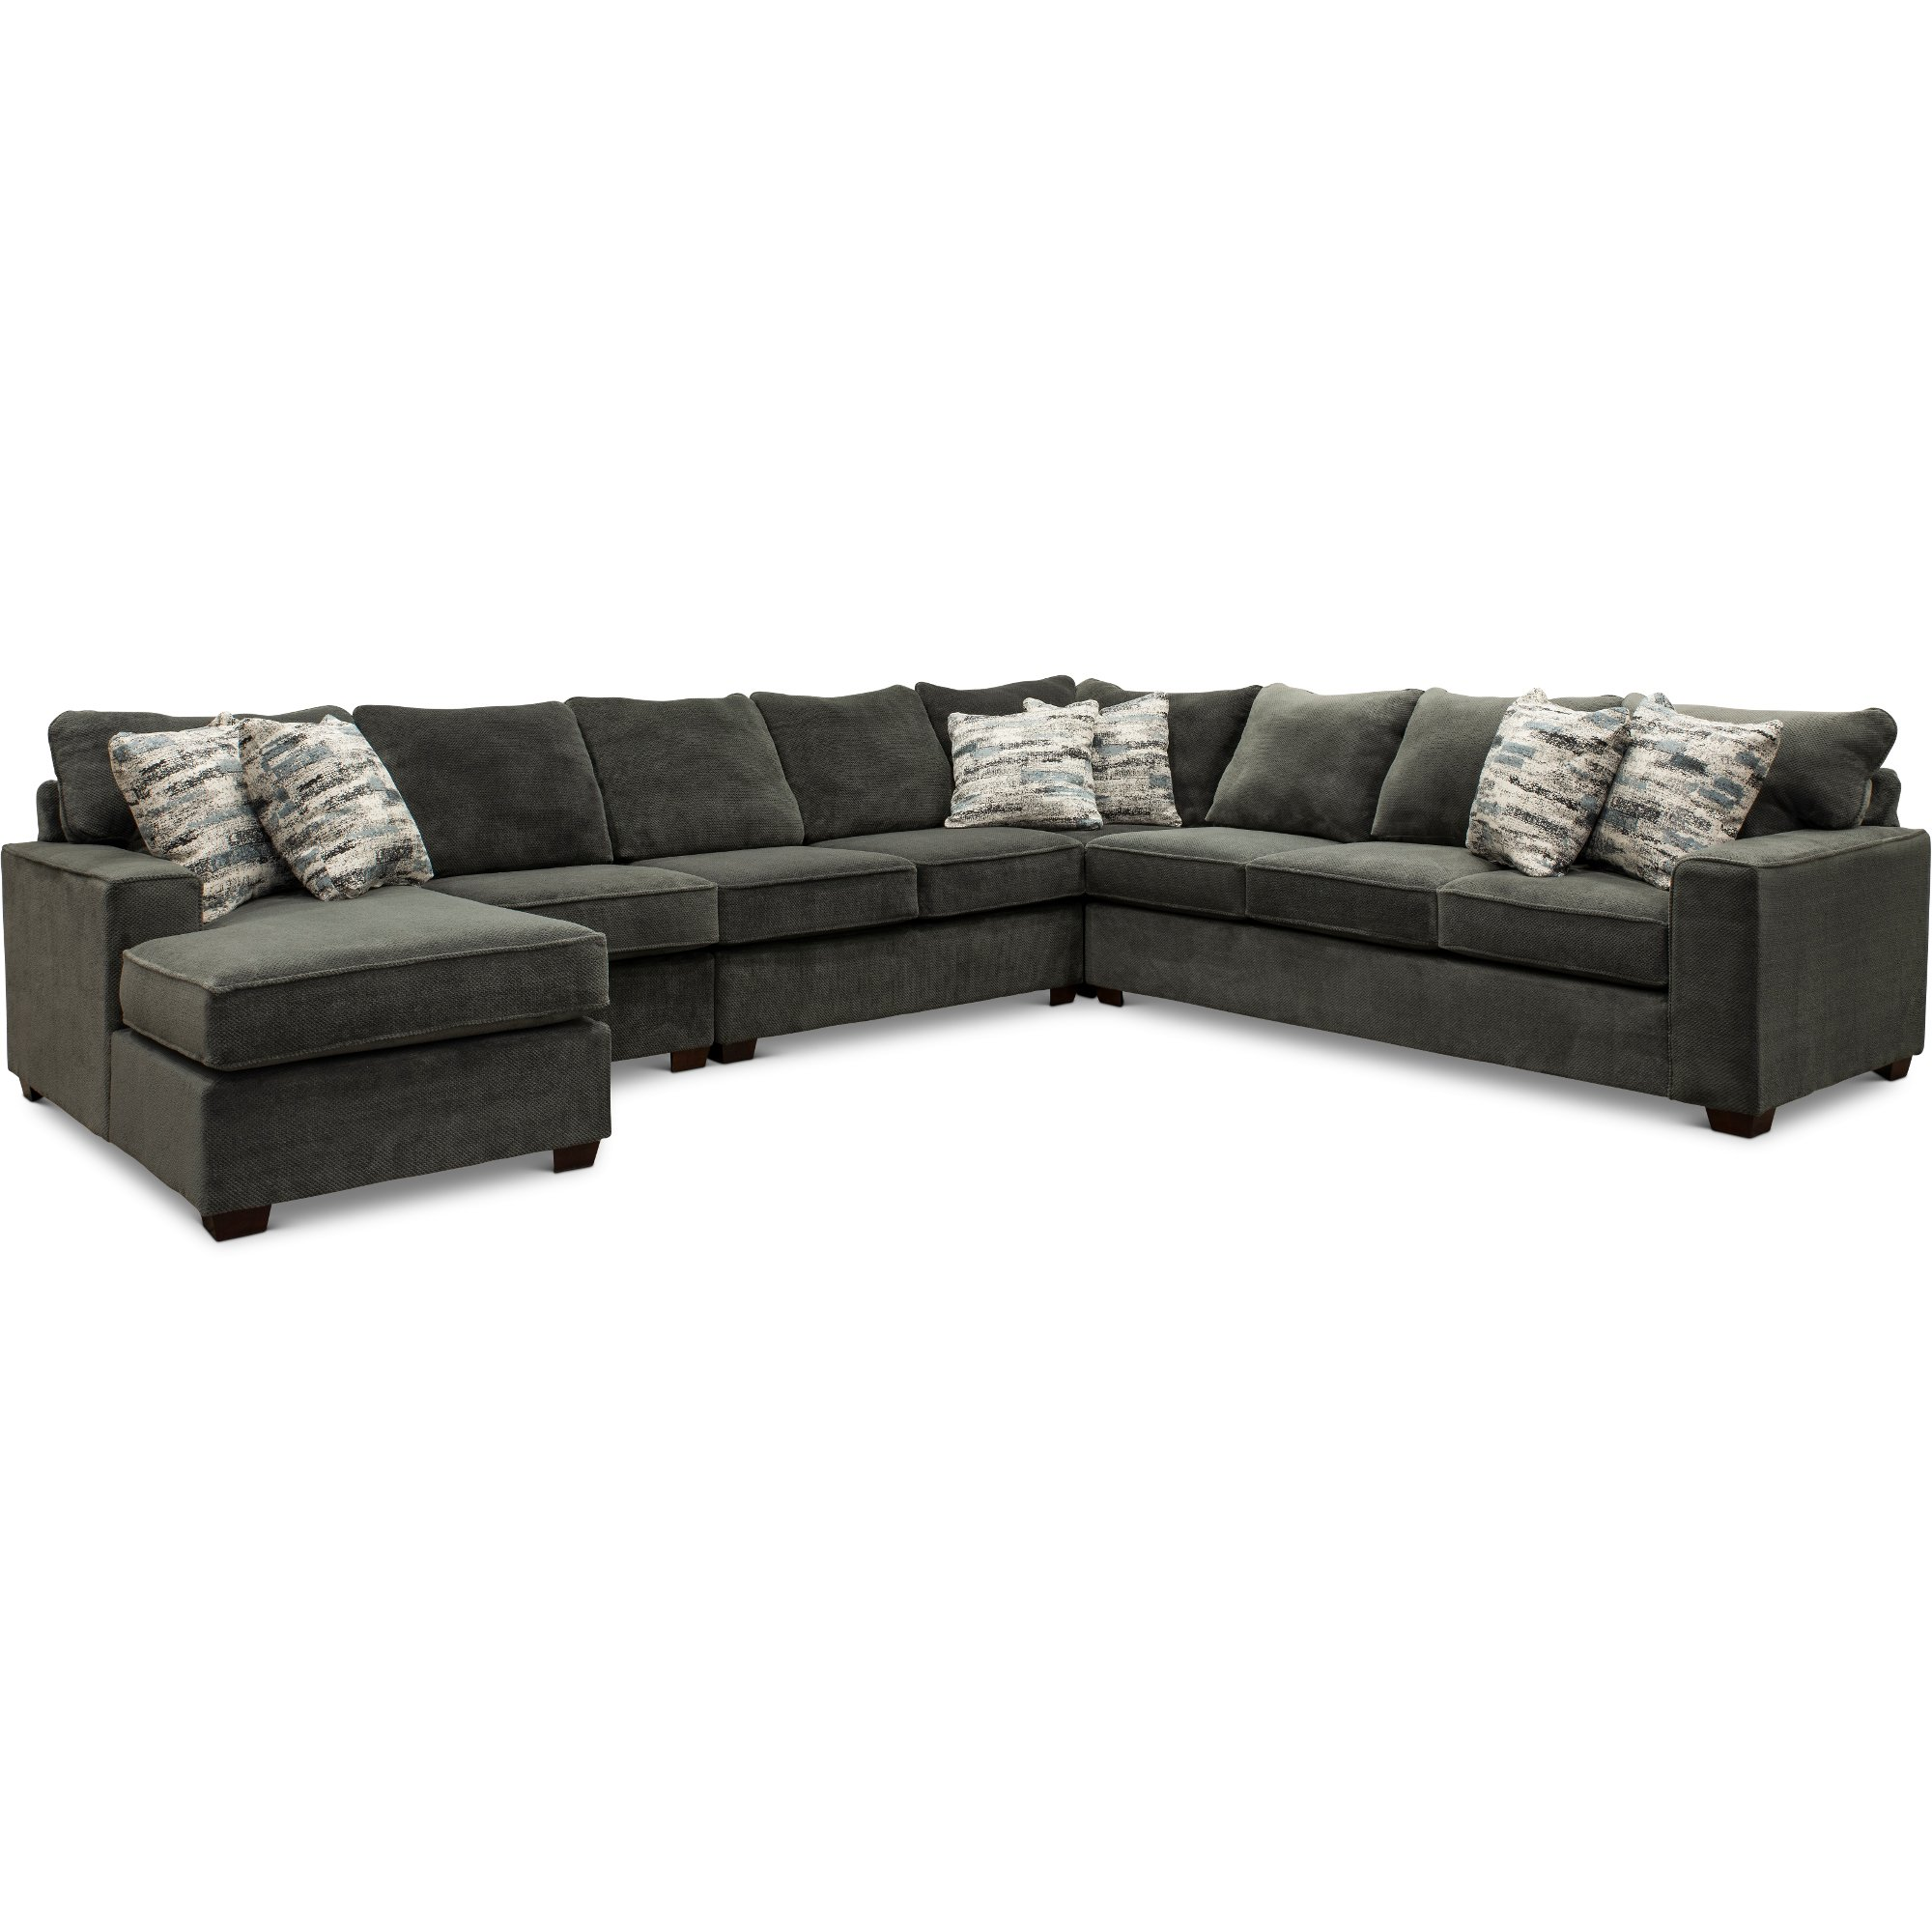 Dark Gray 5 Piece Sectional Sofa With